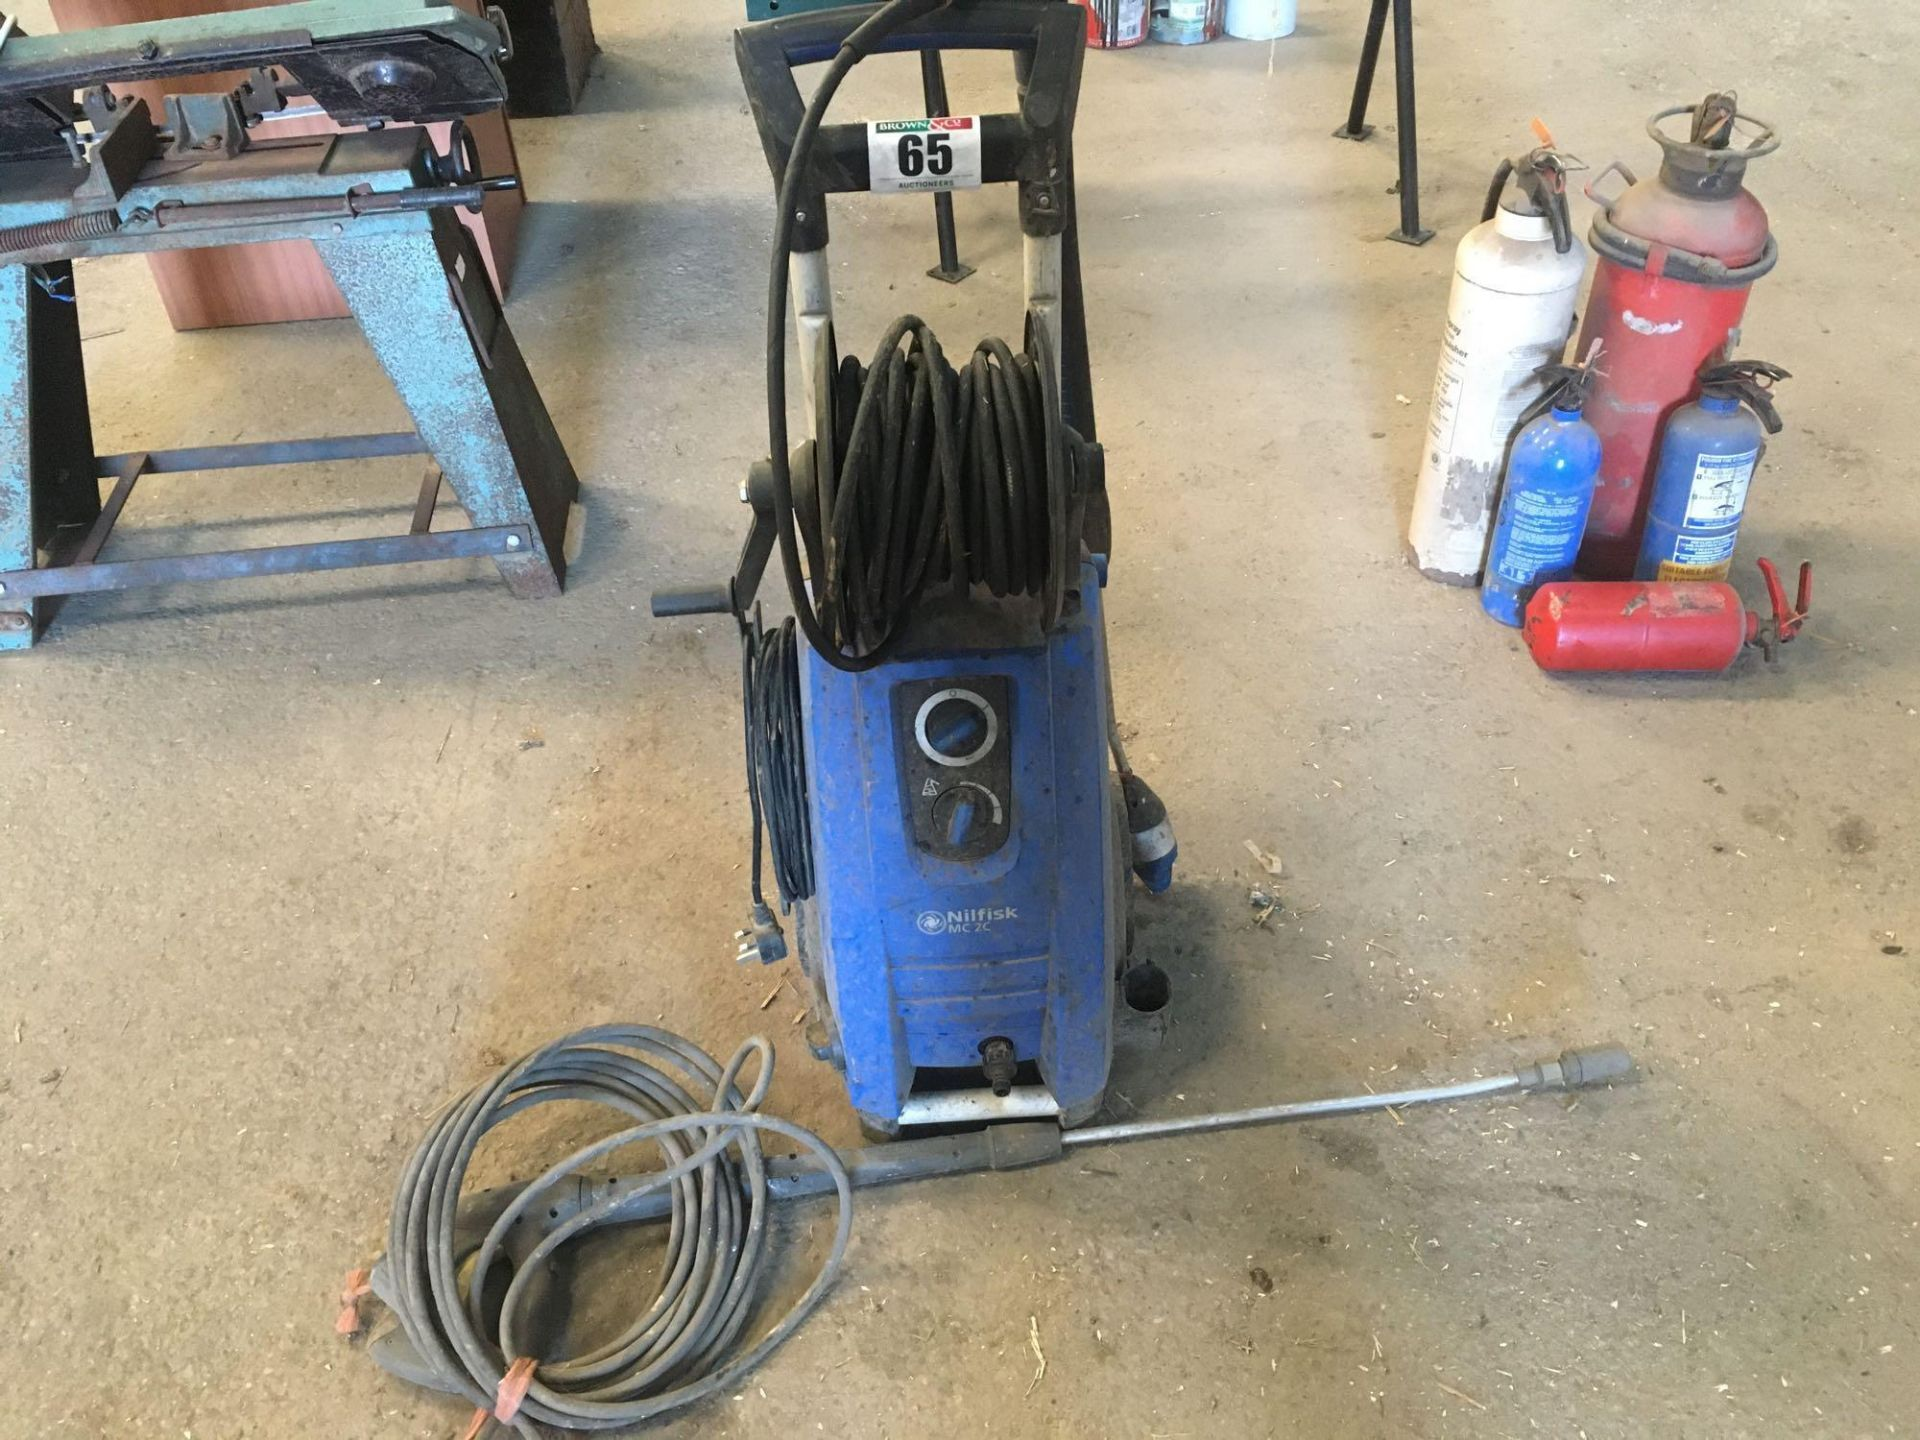 Pressure washer. Manual in office.